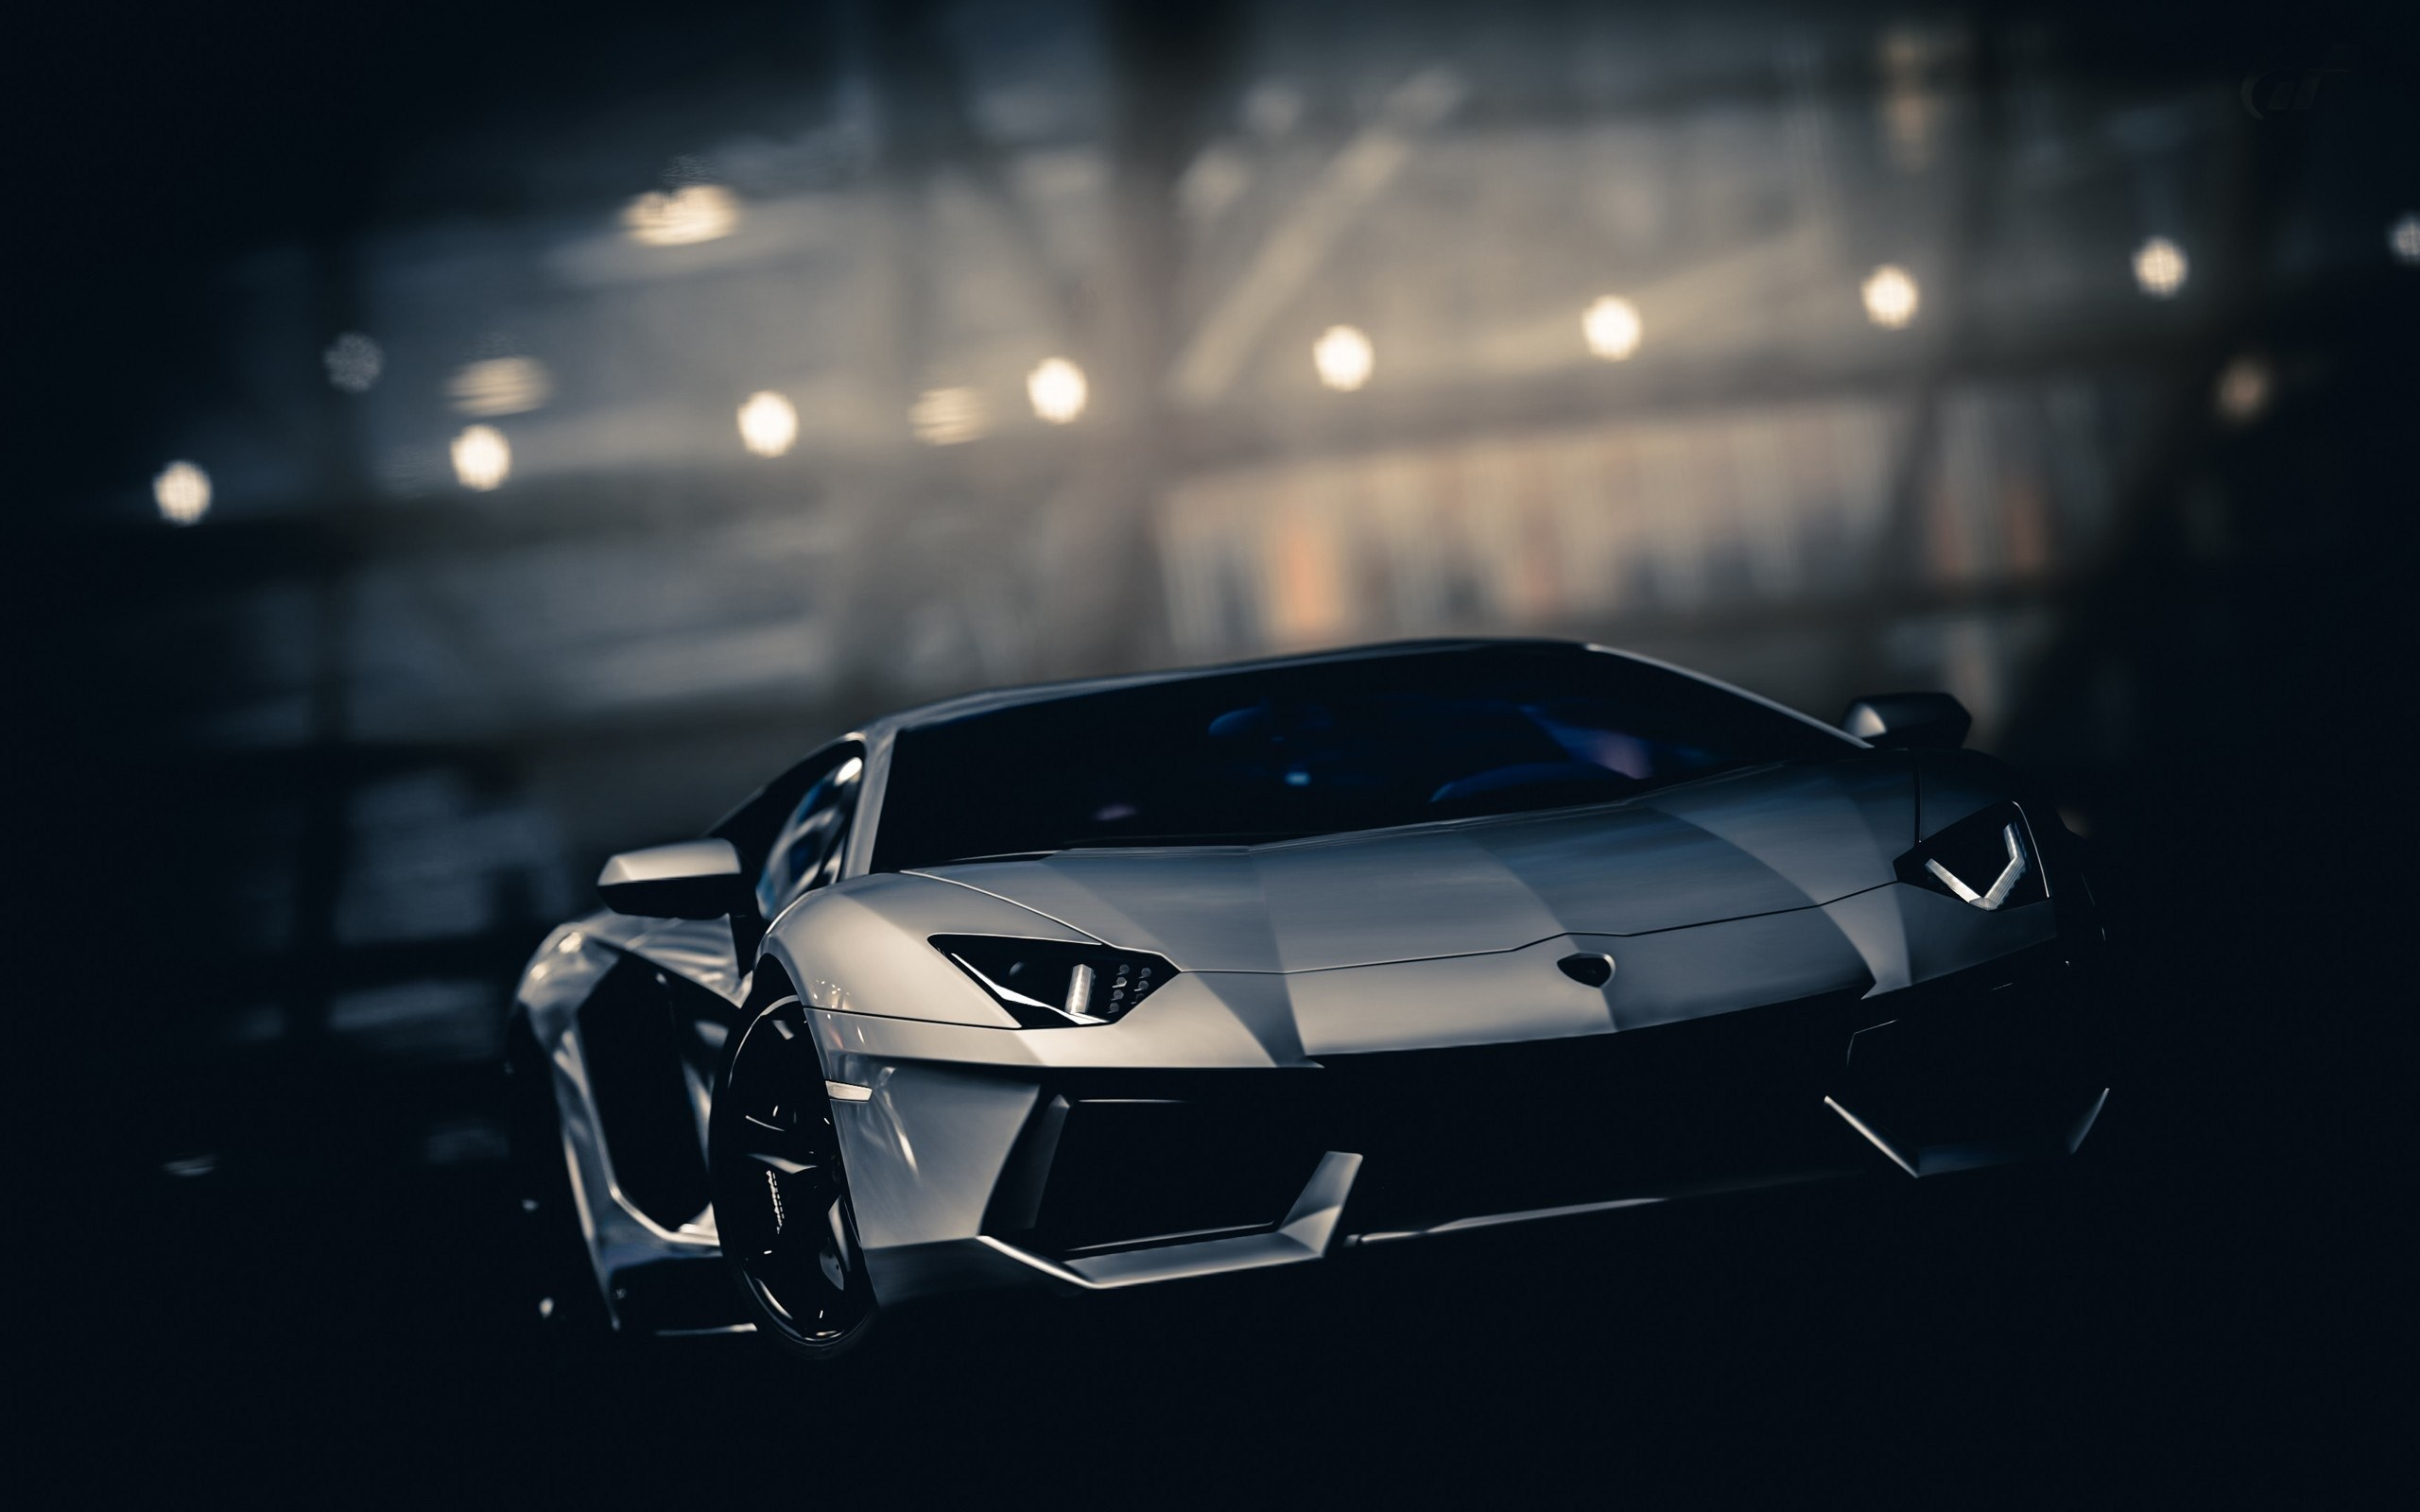 Hd wallpaper lamborghini - 50 Super Sports Car Wallpapers That Ll Blow Your Desktop Away